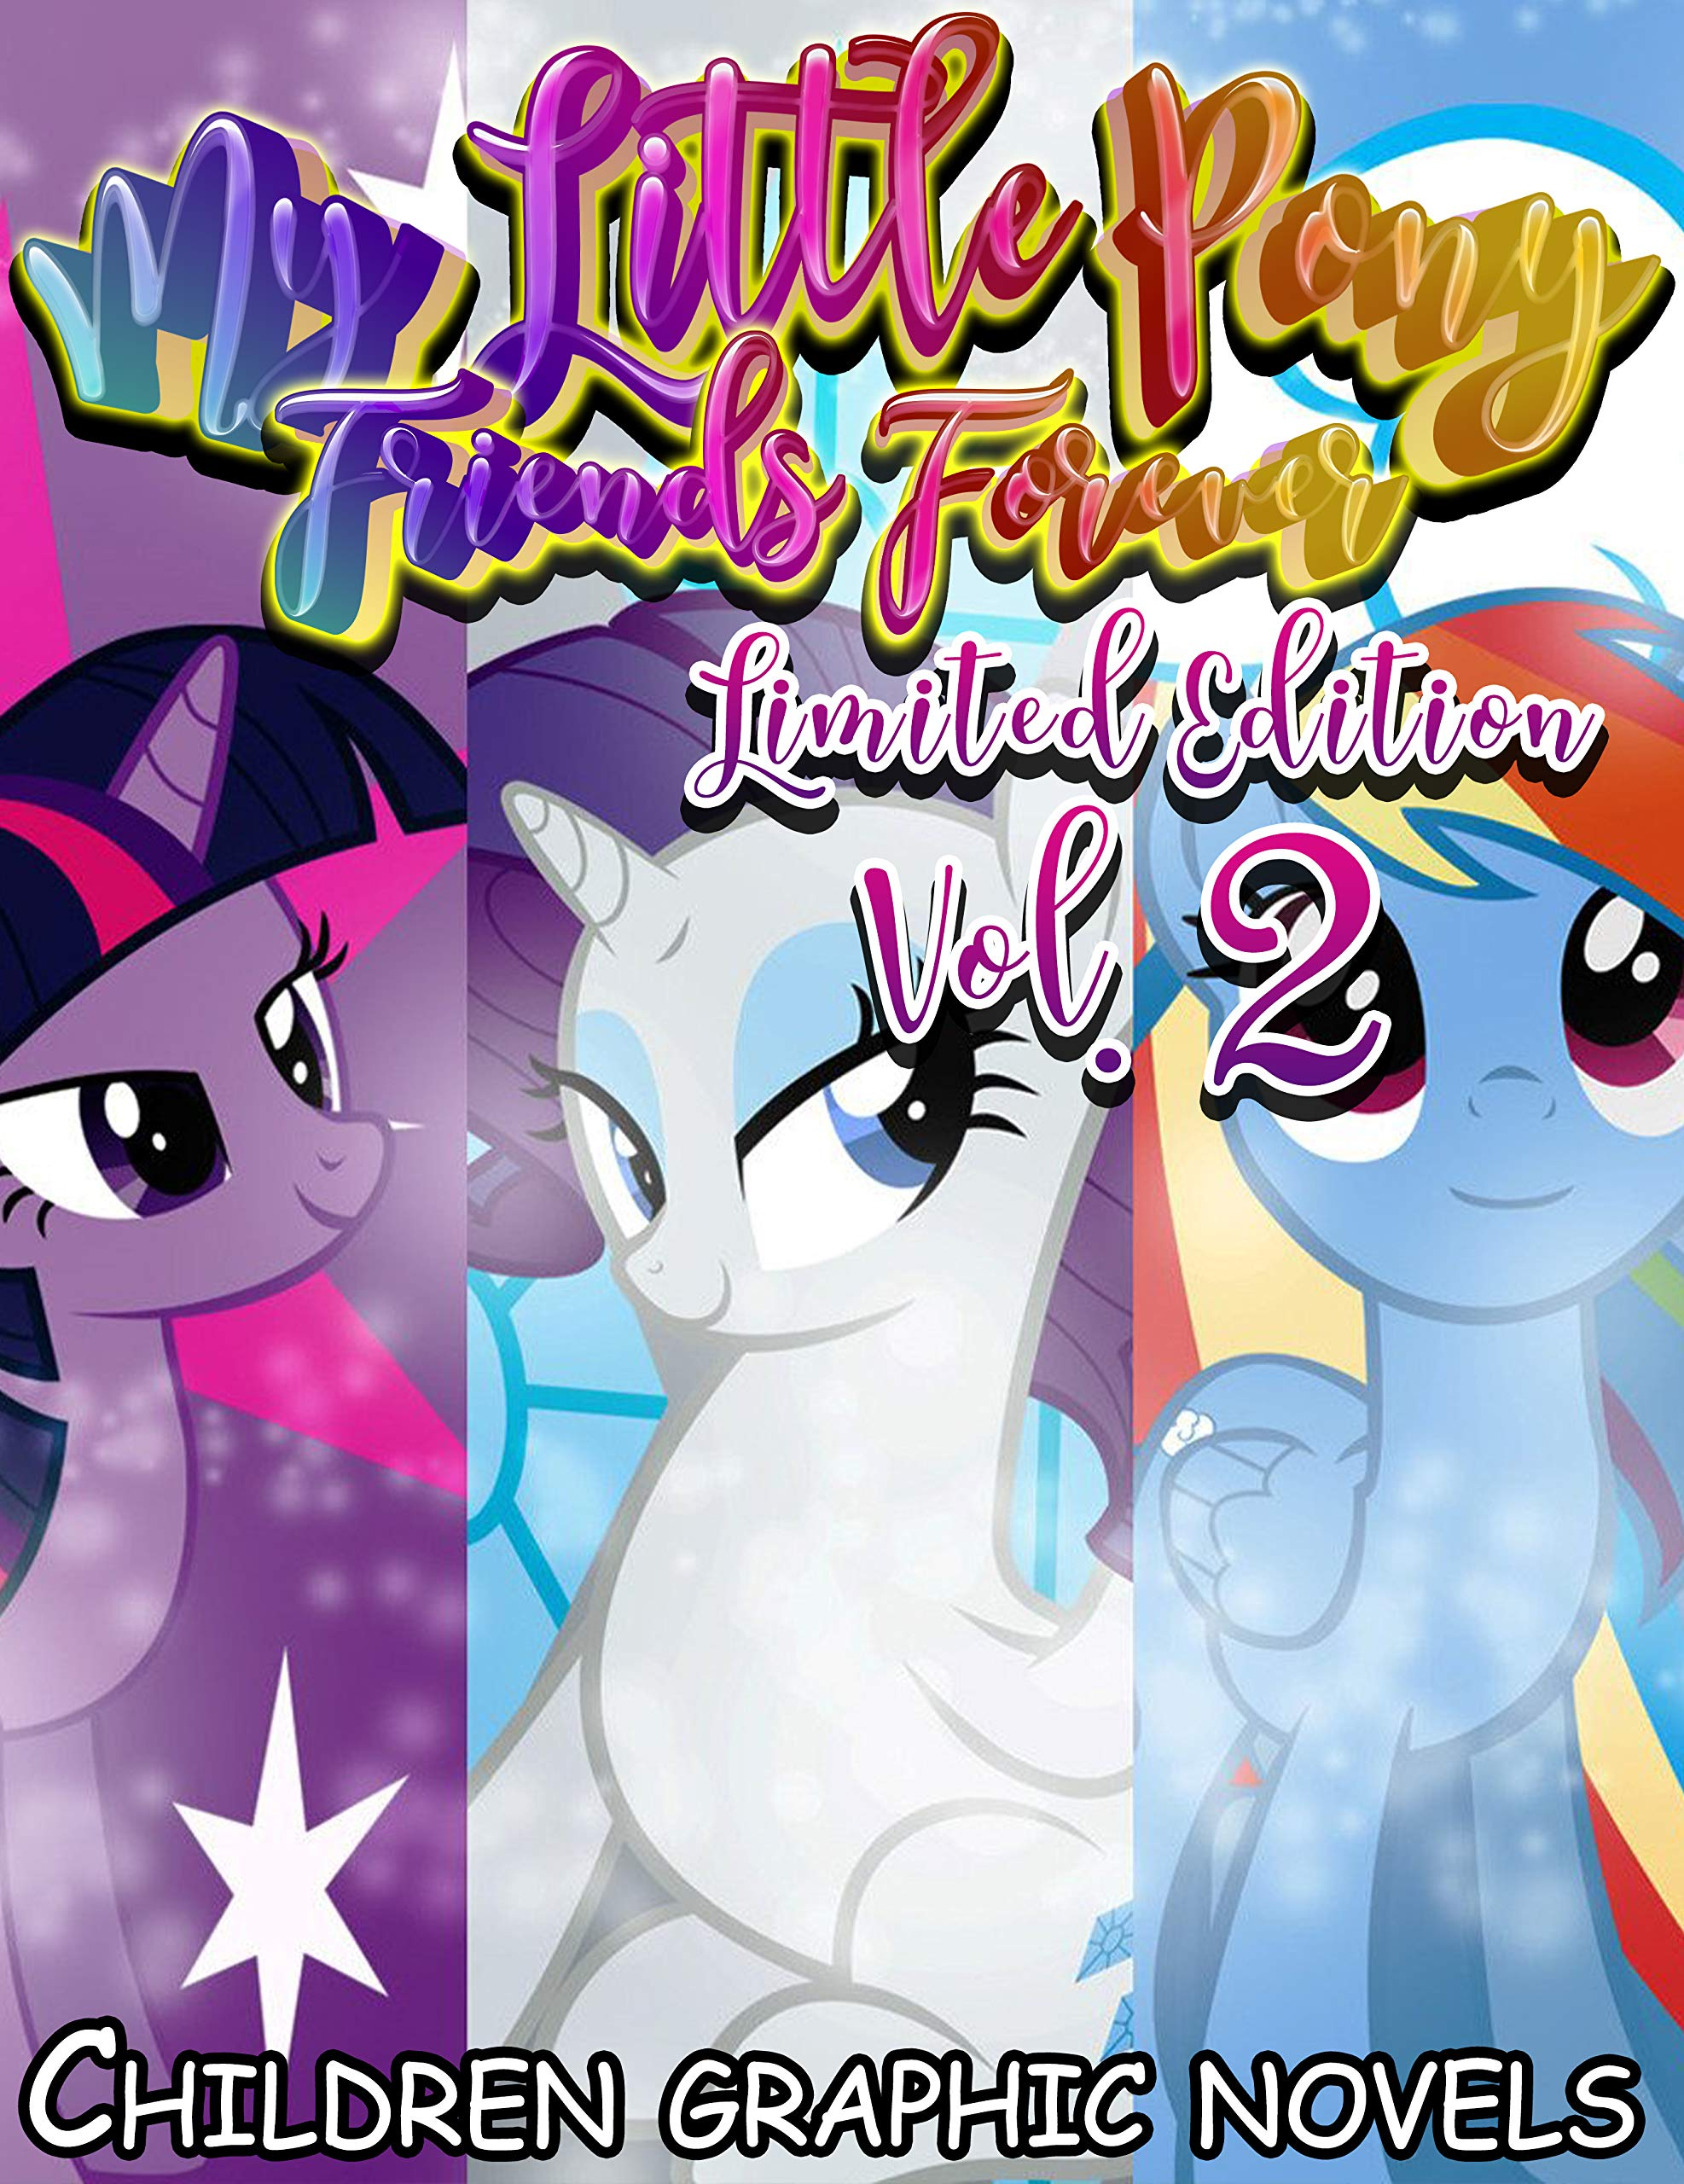 Children graphic novels My Little Pony Friends Forever Limited Edition: Funny My Little Pony Friends Forever Full series Vol 2